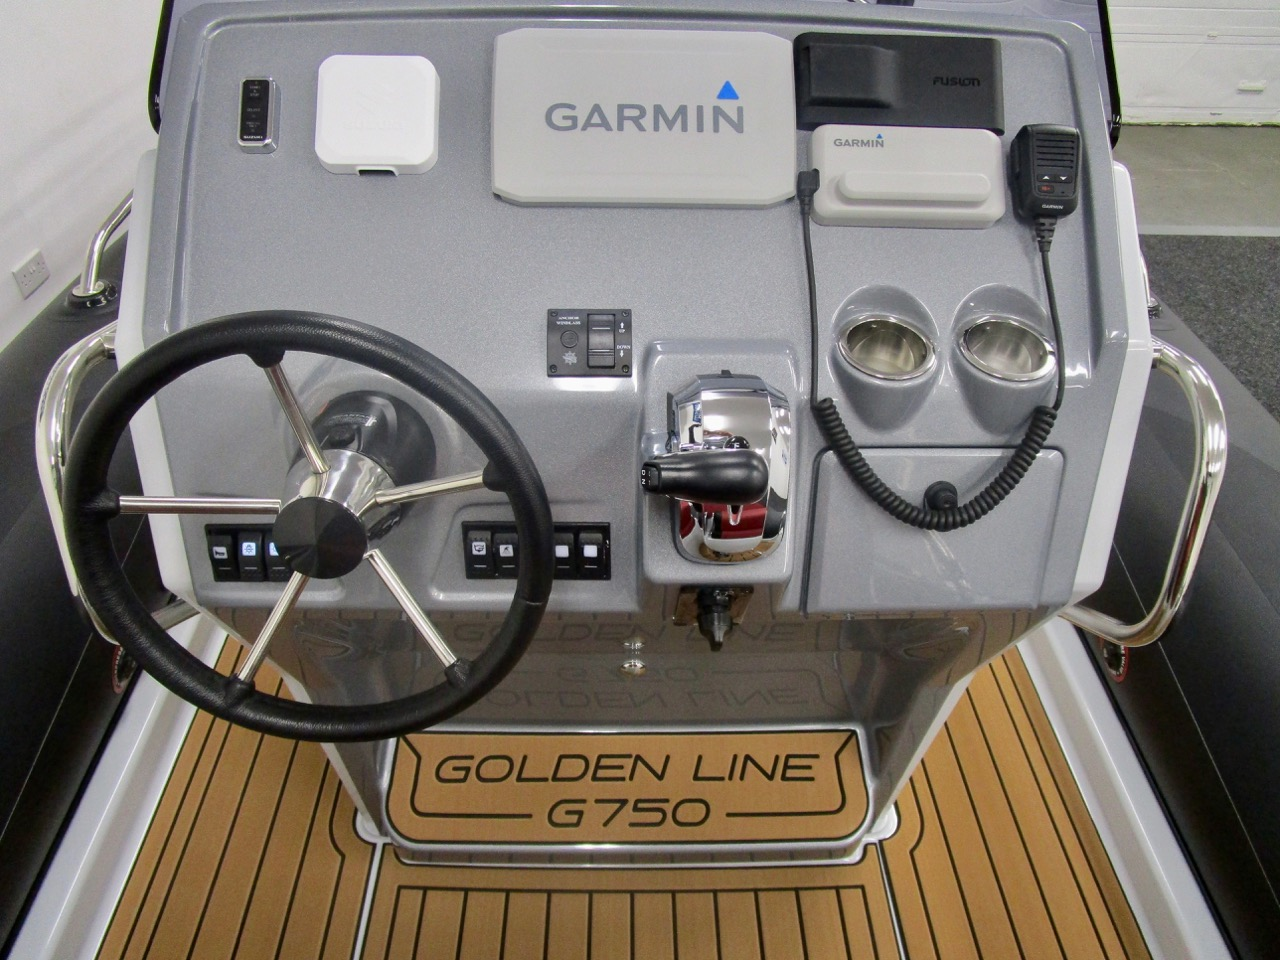 GRAND G750 RIB console helm position, instrument covers on